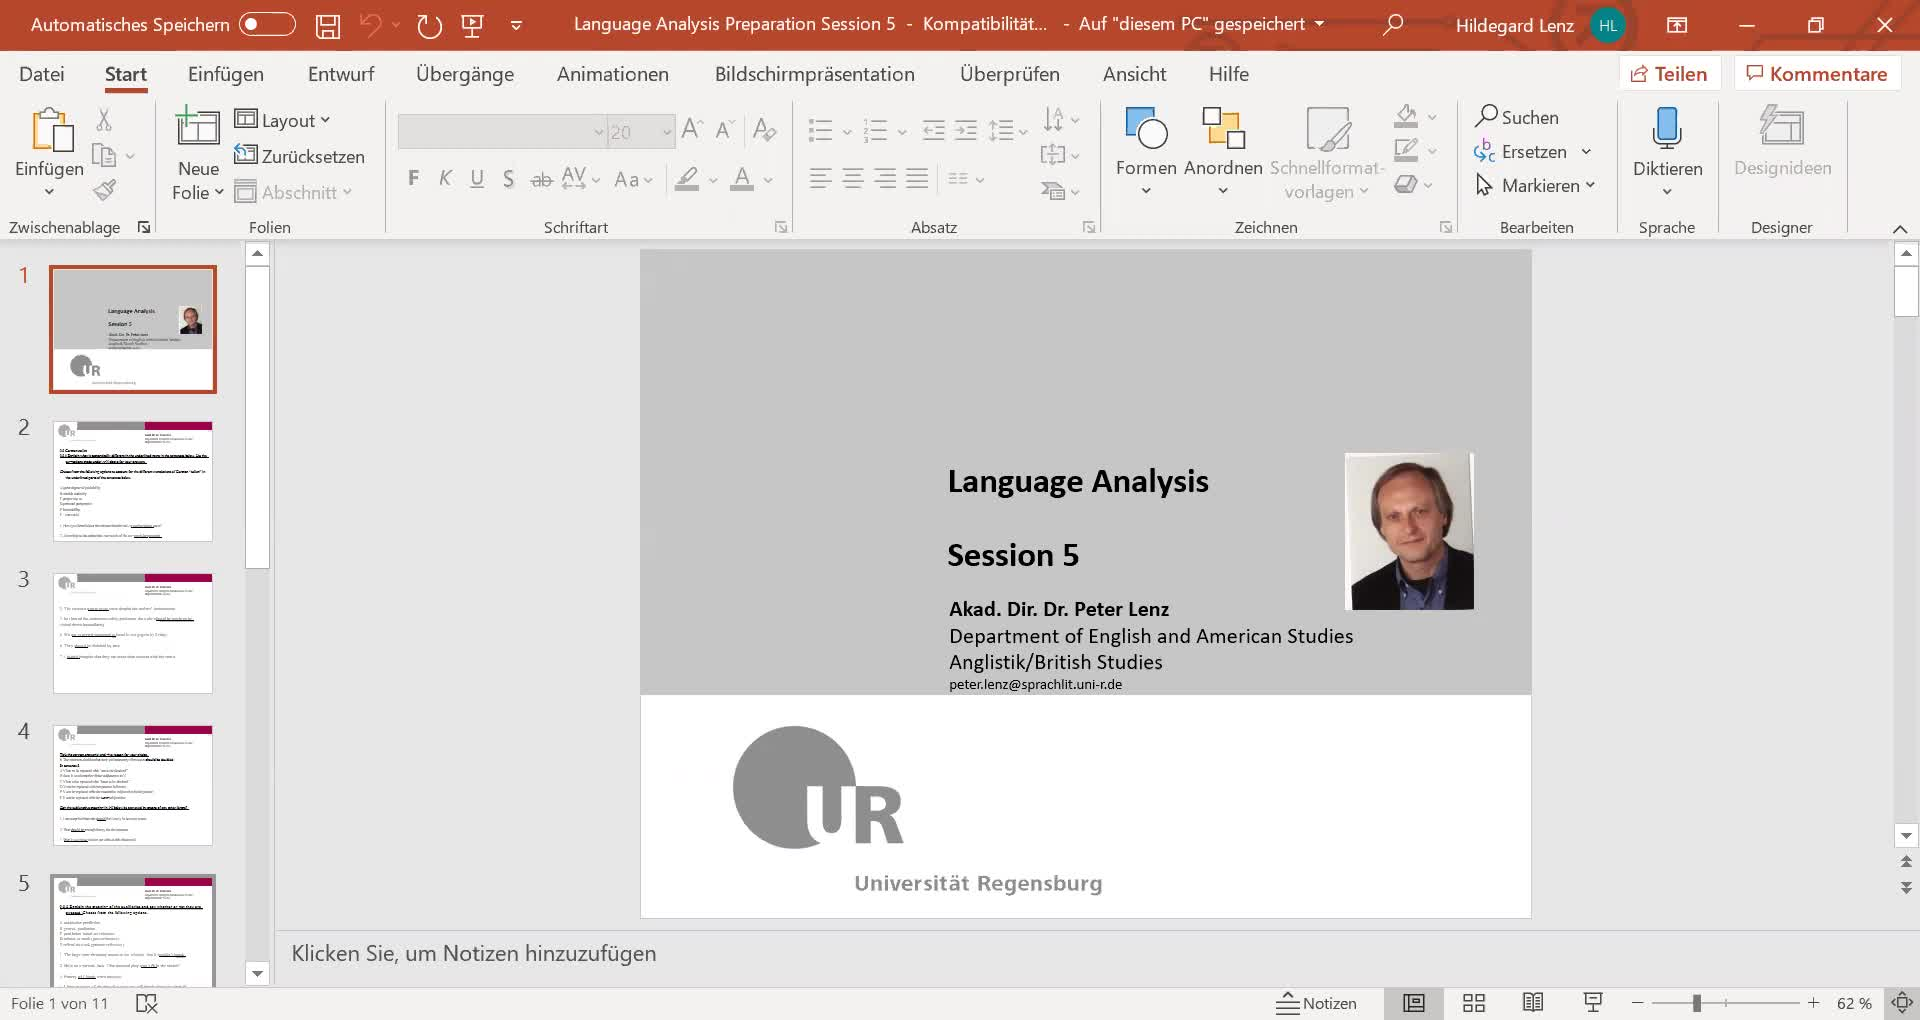 Language Analysis Session 5 Video